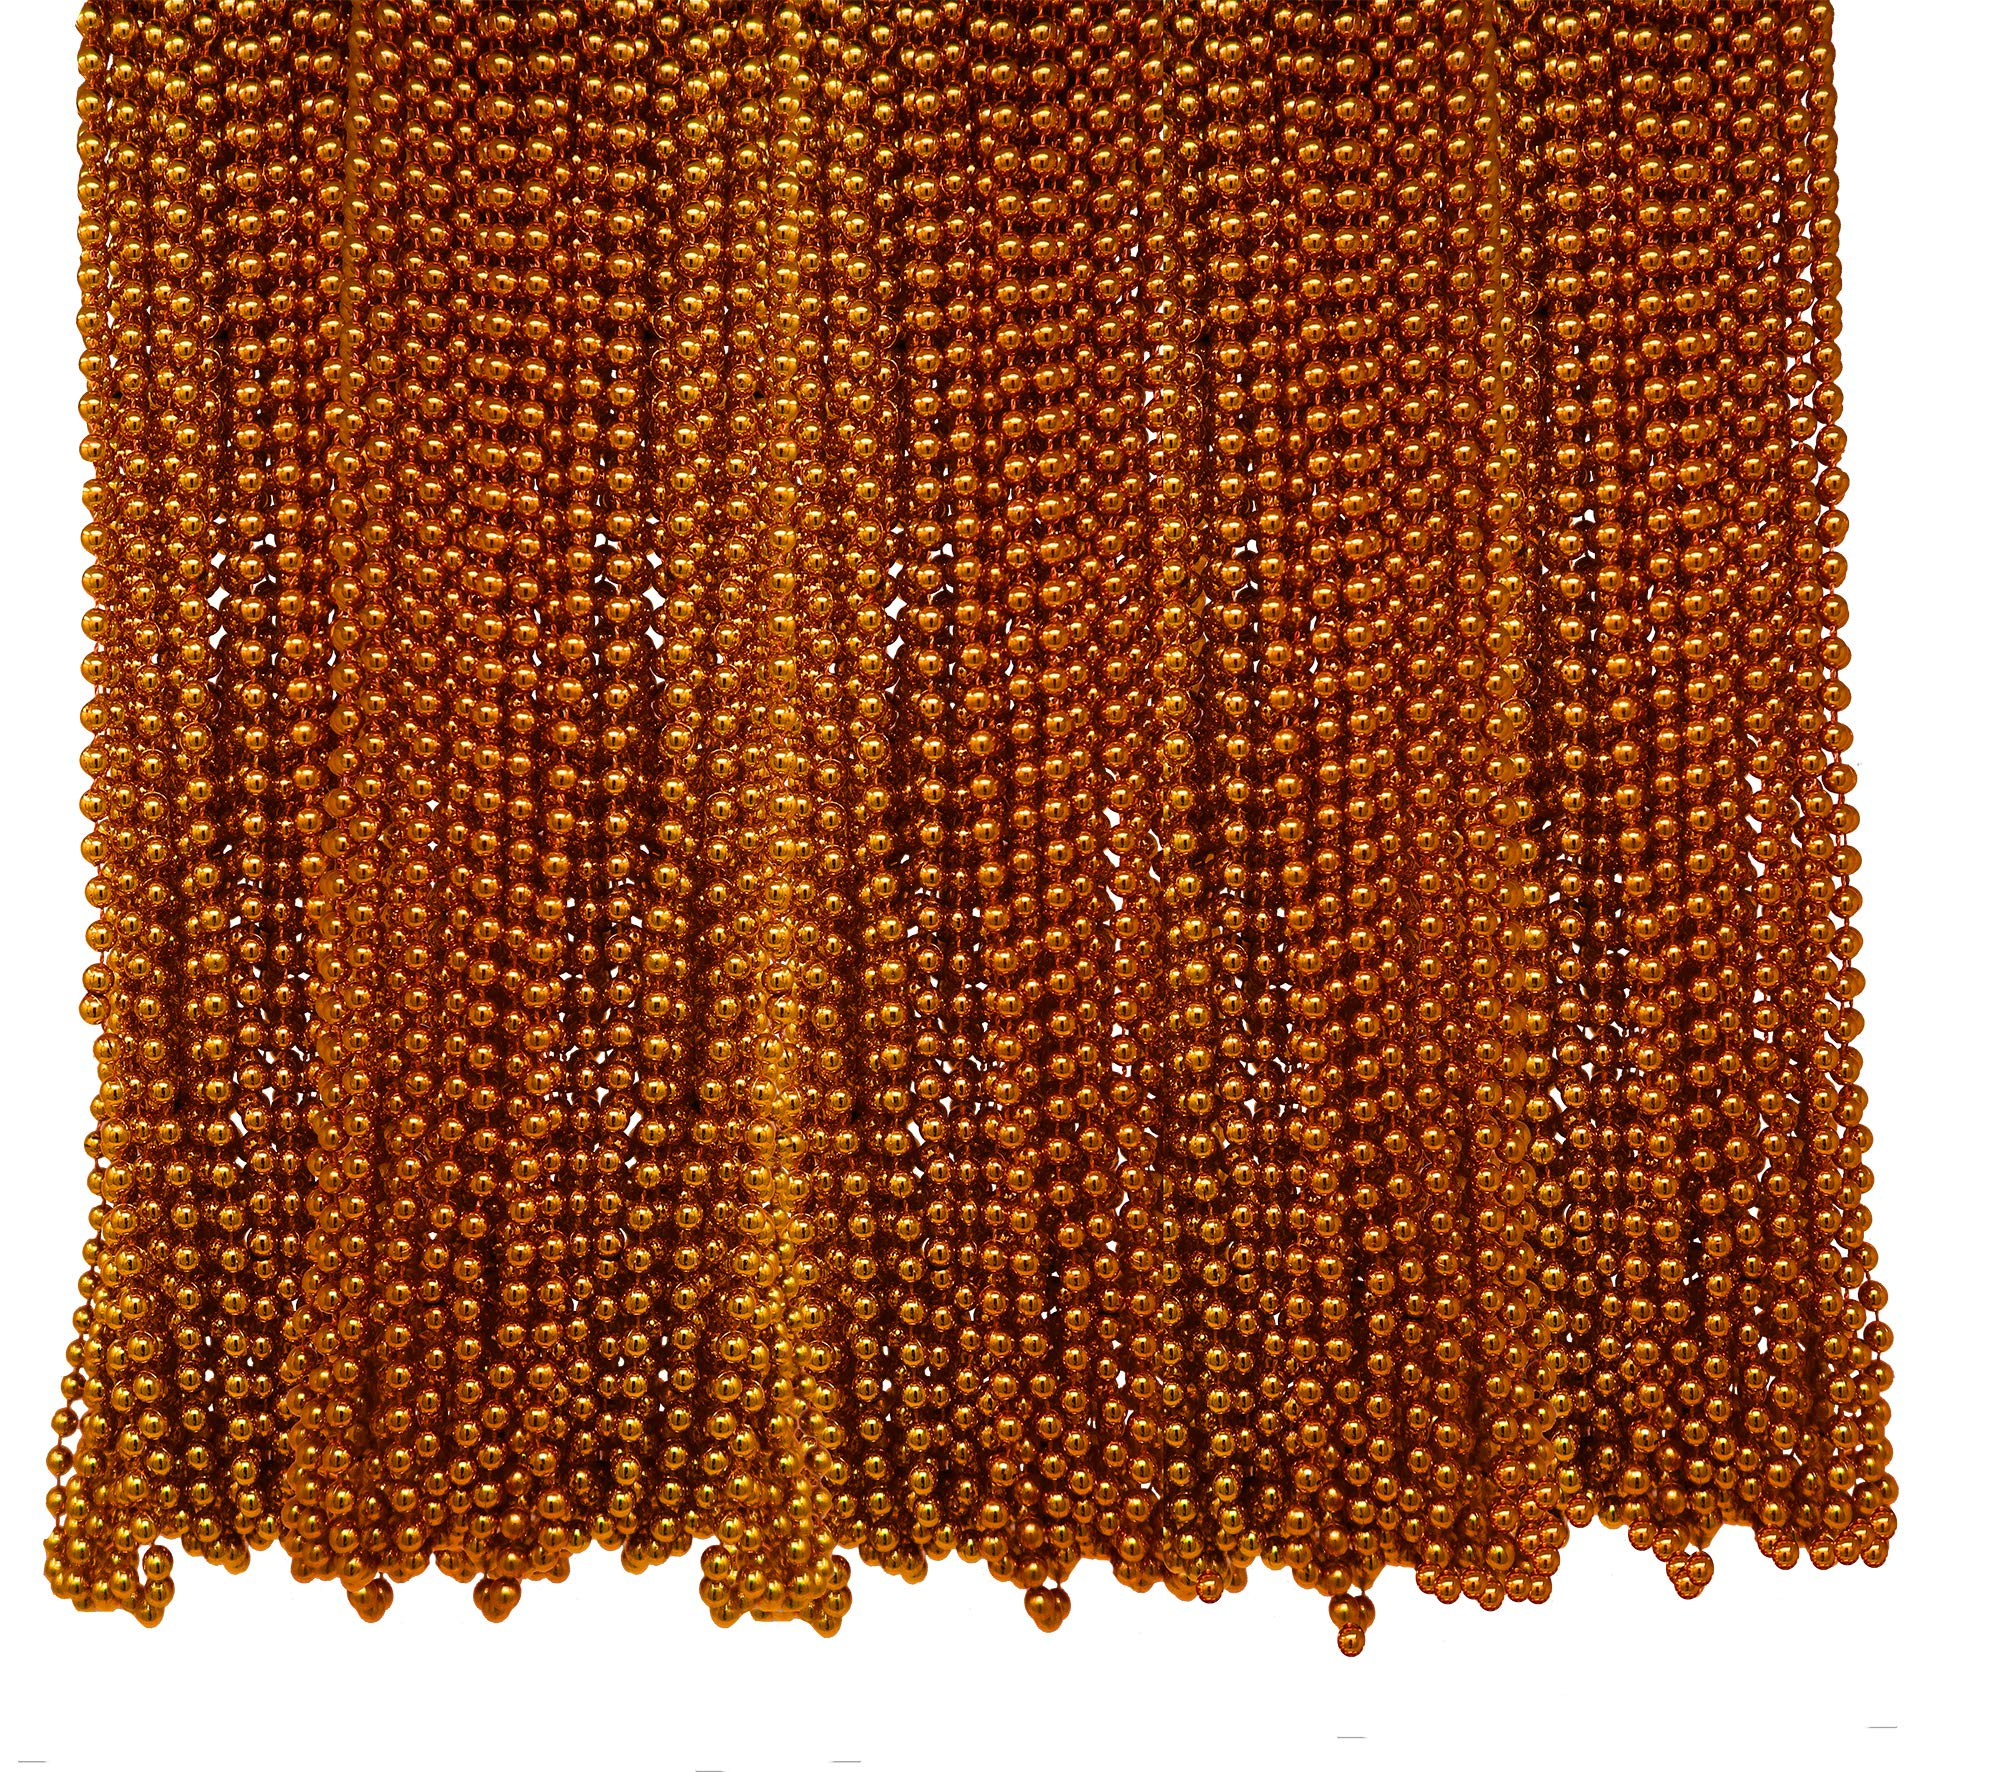 4E's Novelty Bulk Pack of 72 Orange Beads Necklace 33 Inches Long 7mm Thick, Great for Halloween, Mardi Gras, Trick or Treat Party Favors, Costume Accessory Supplies by 4E's Novelty